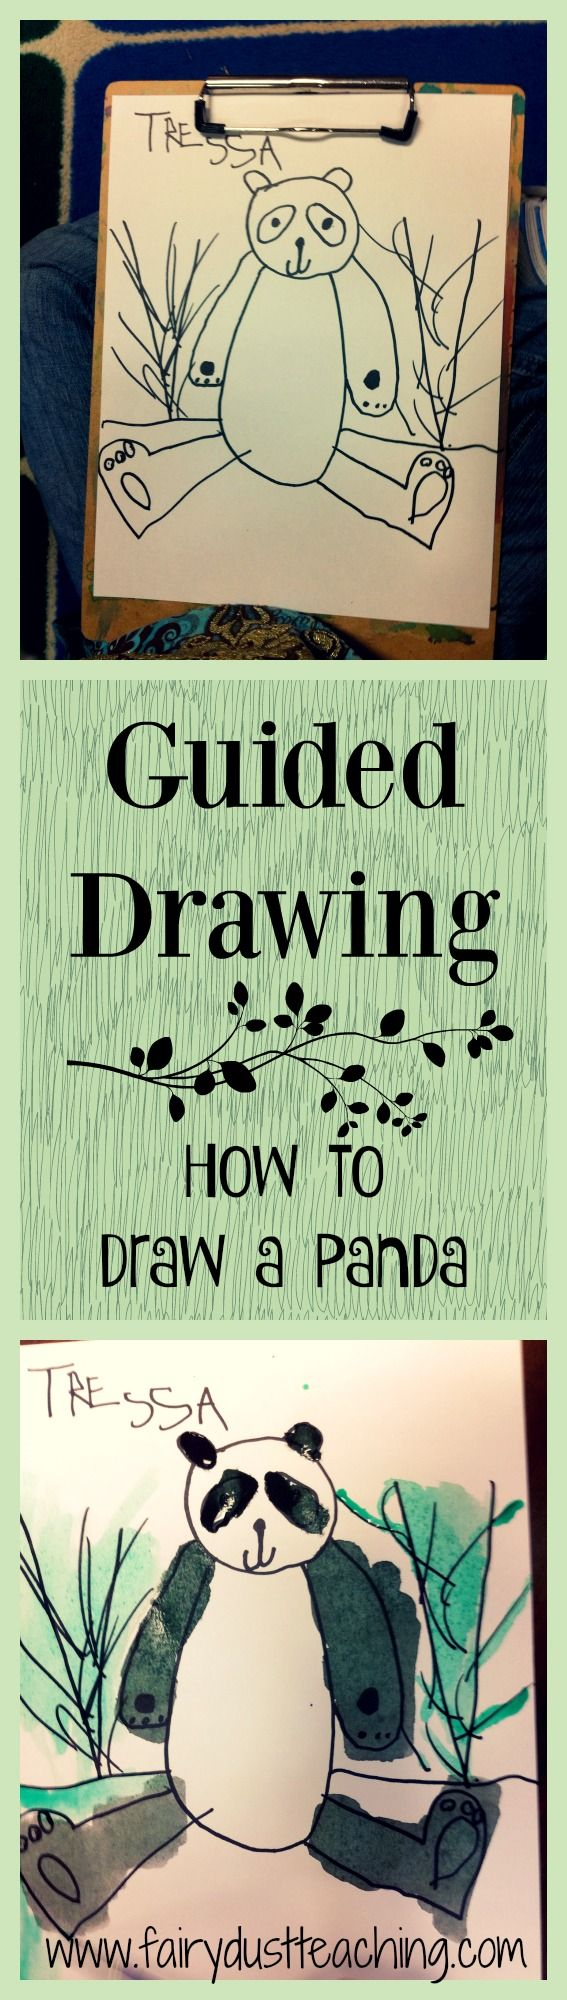 Guided Drawing Lesson: How to draw a panda. Get the step-by-step at Fairy Dust Teaching.